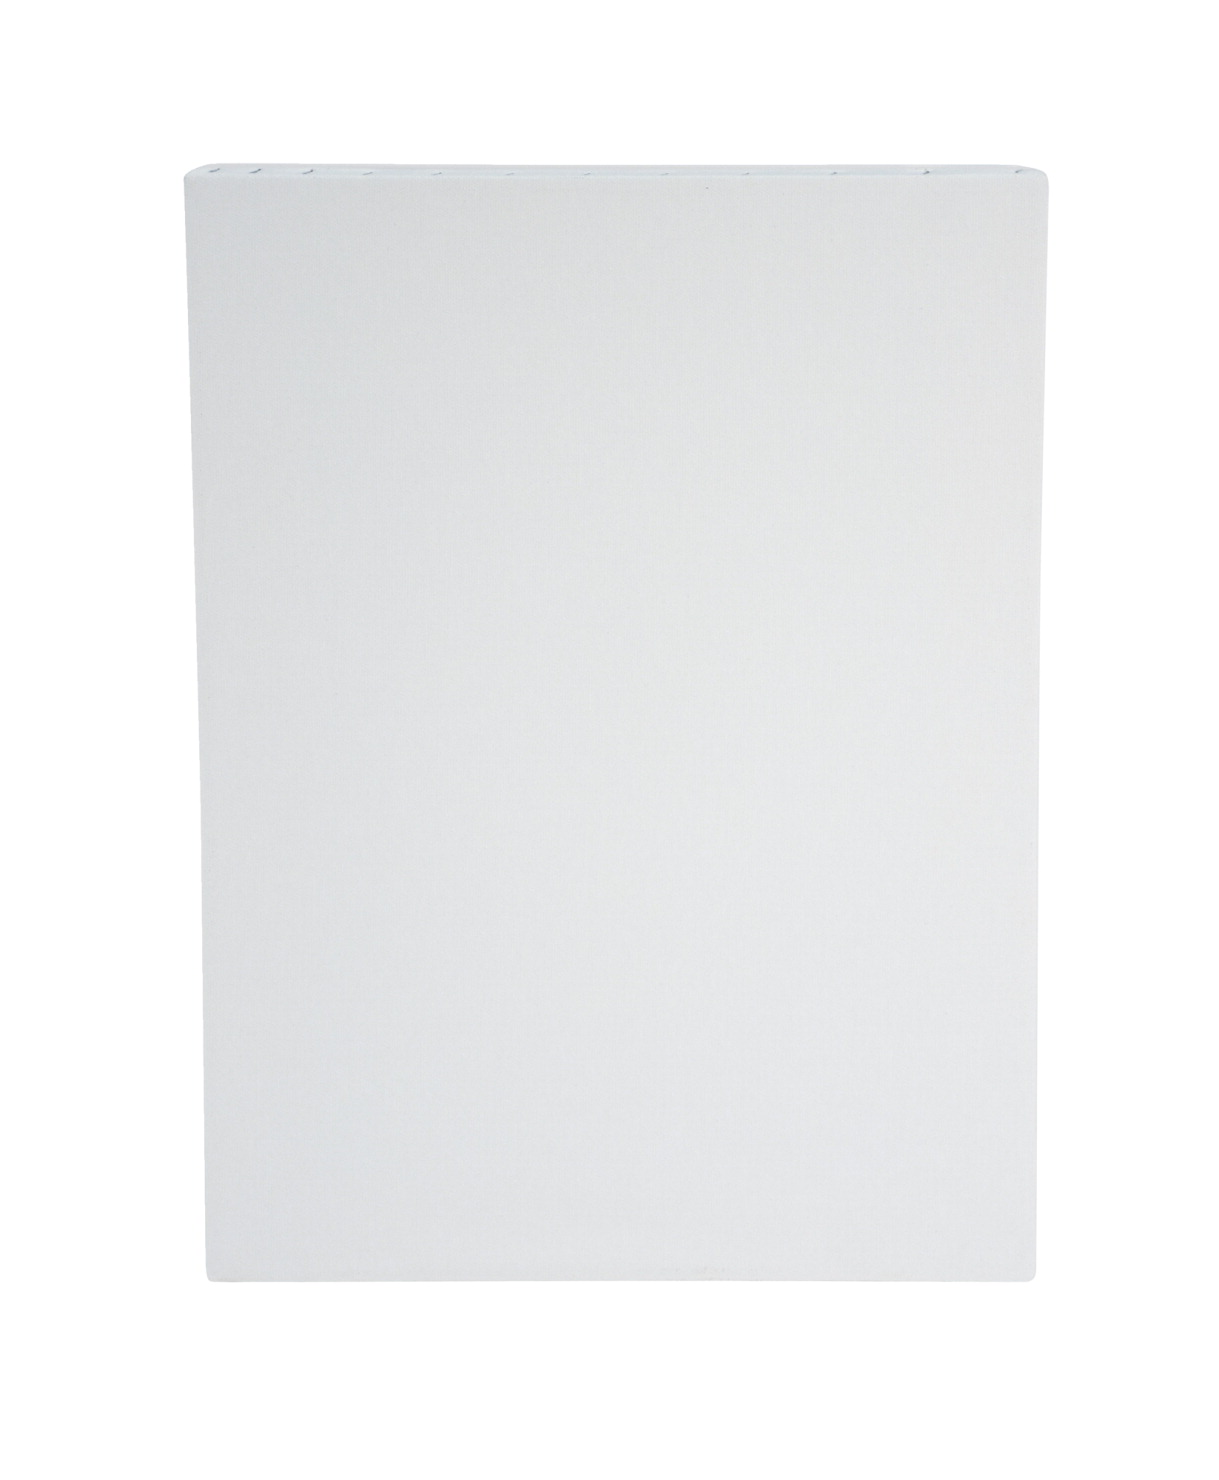 Sax Quality Stretched Canvas, Double Acrylic Primed, 12 x 16 Inches, White